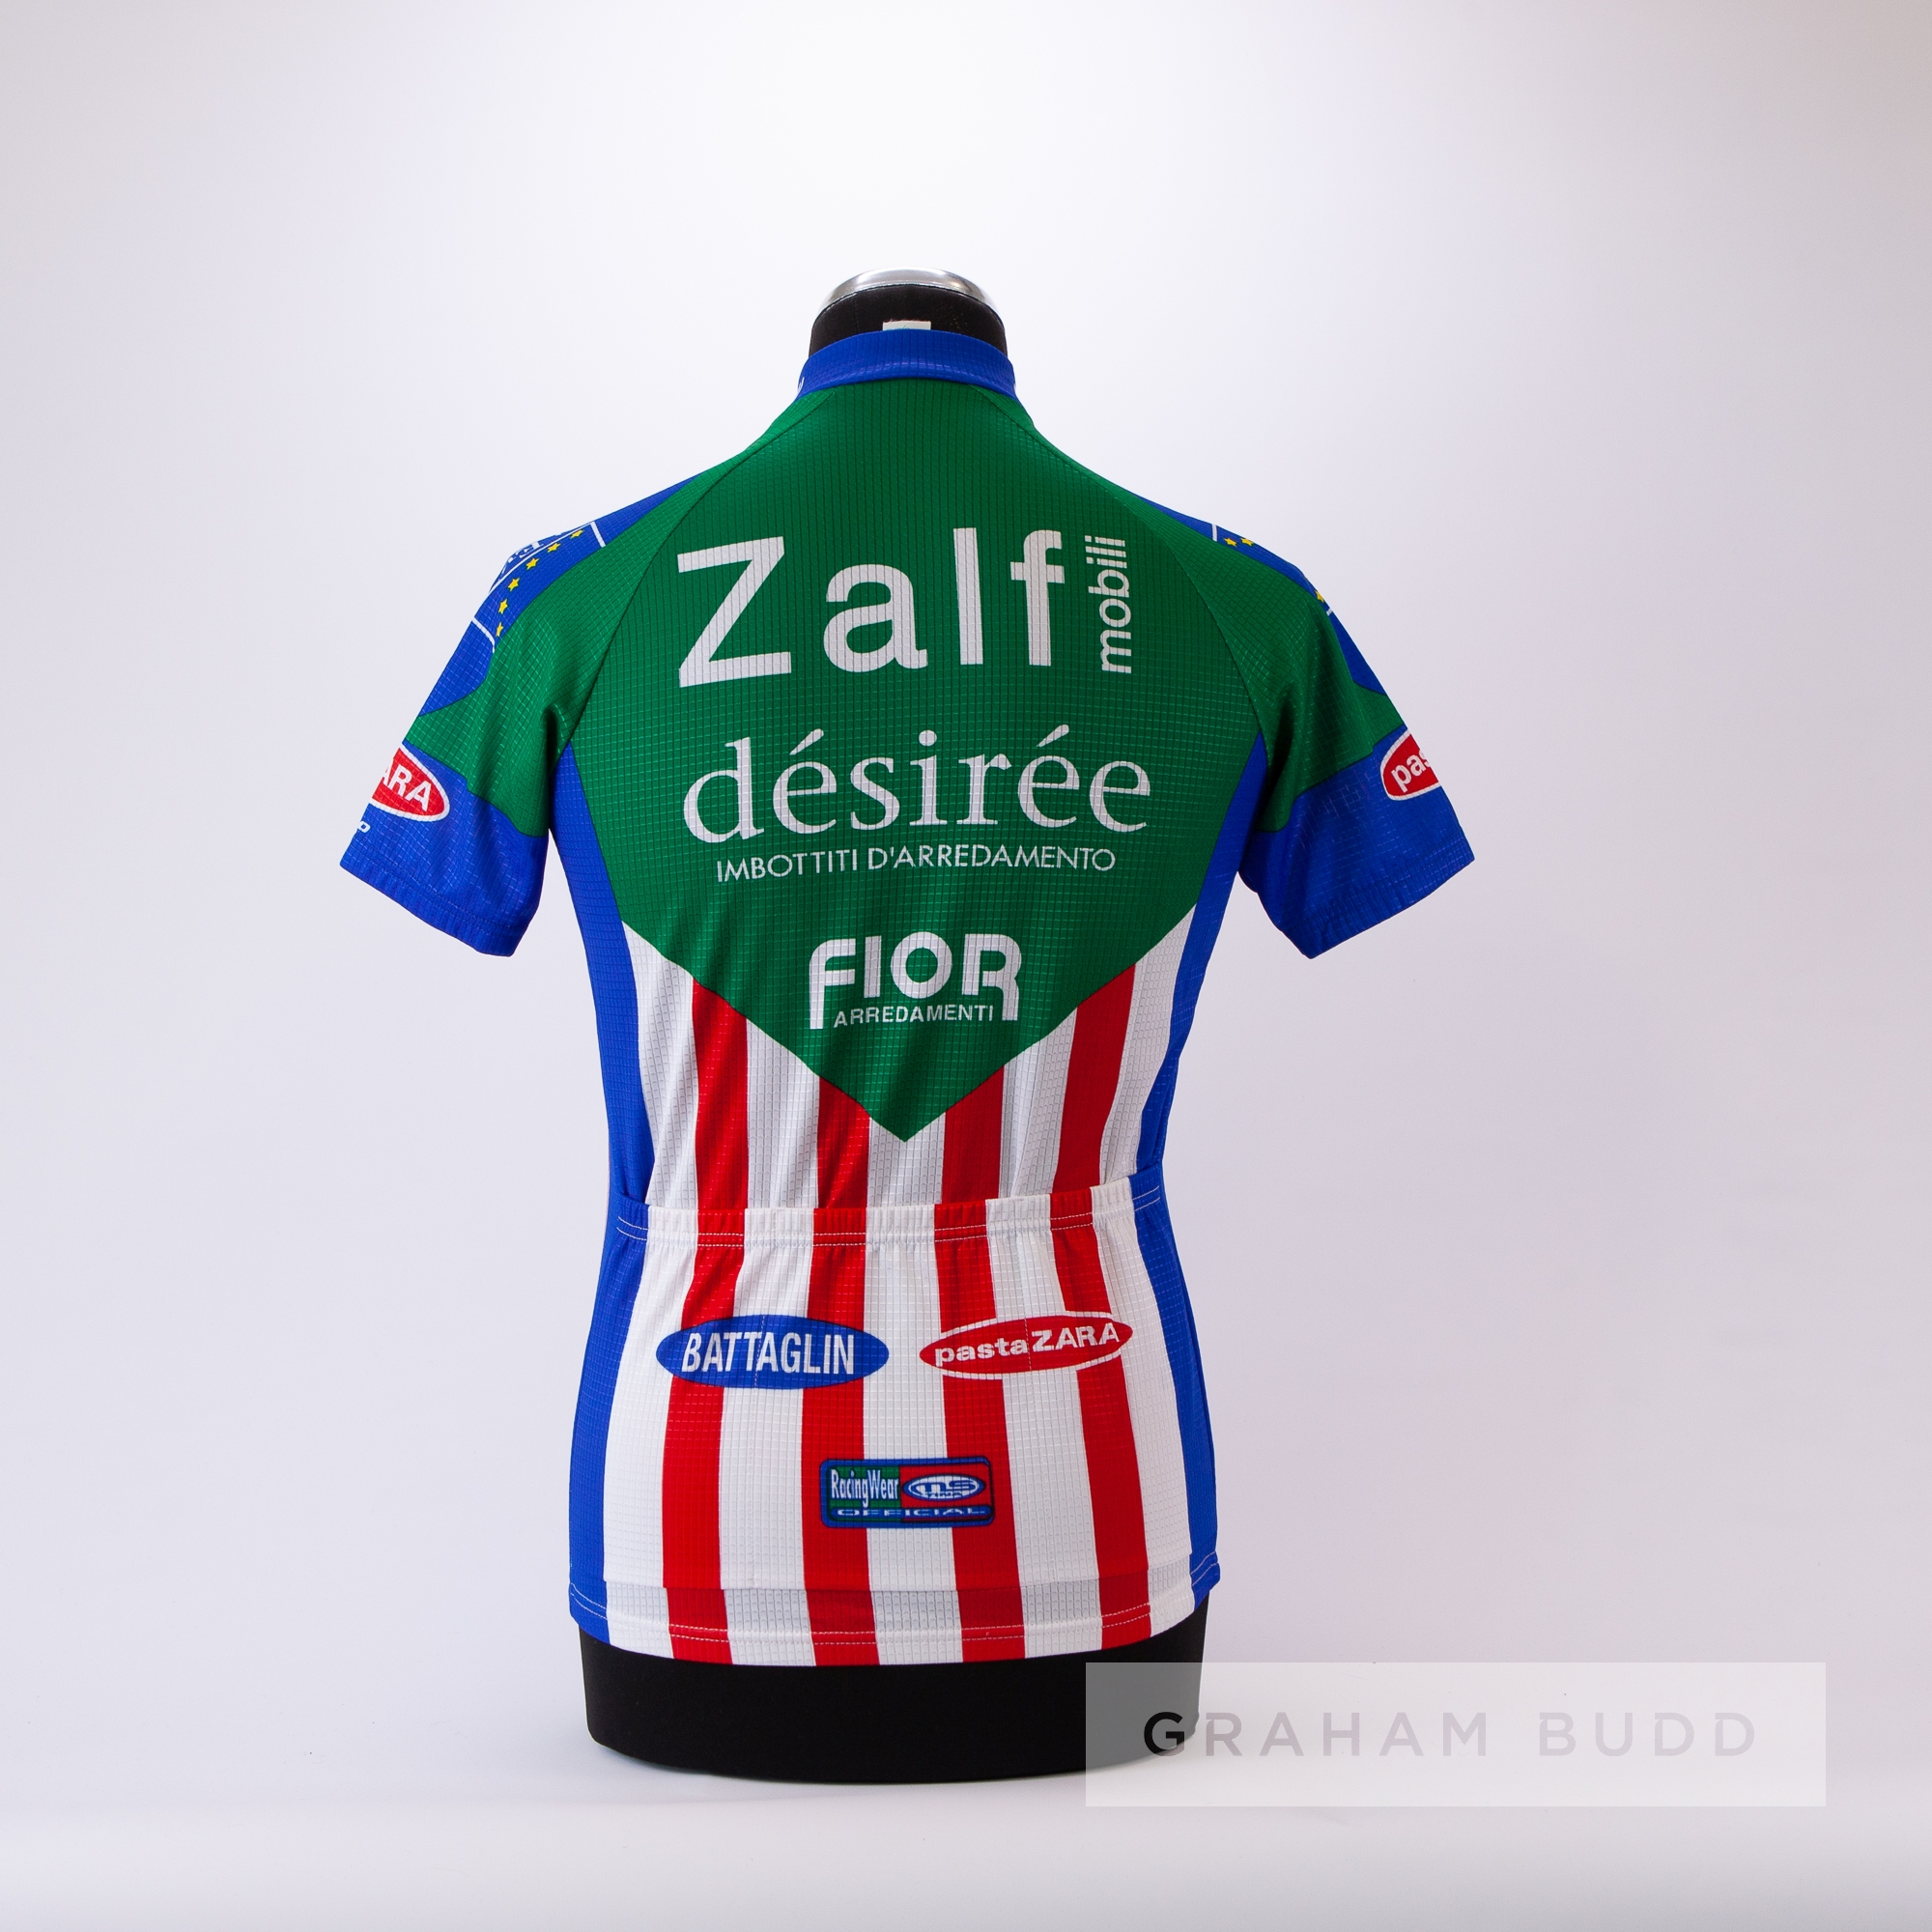 1985 green, blue, red and white Italian Zalf Desiree Fior MSTNA Cycling race jersey, scarce, - Image 4 of 4